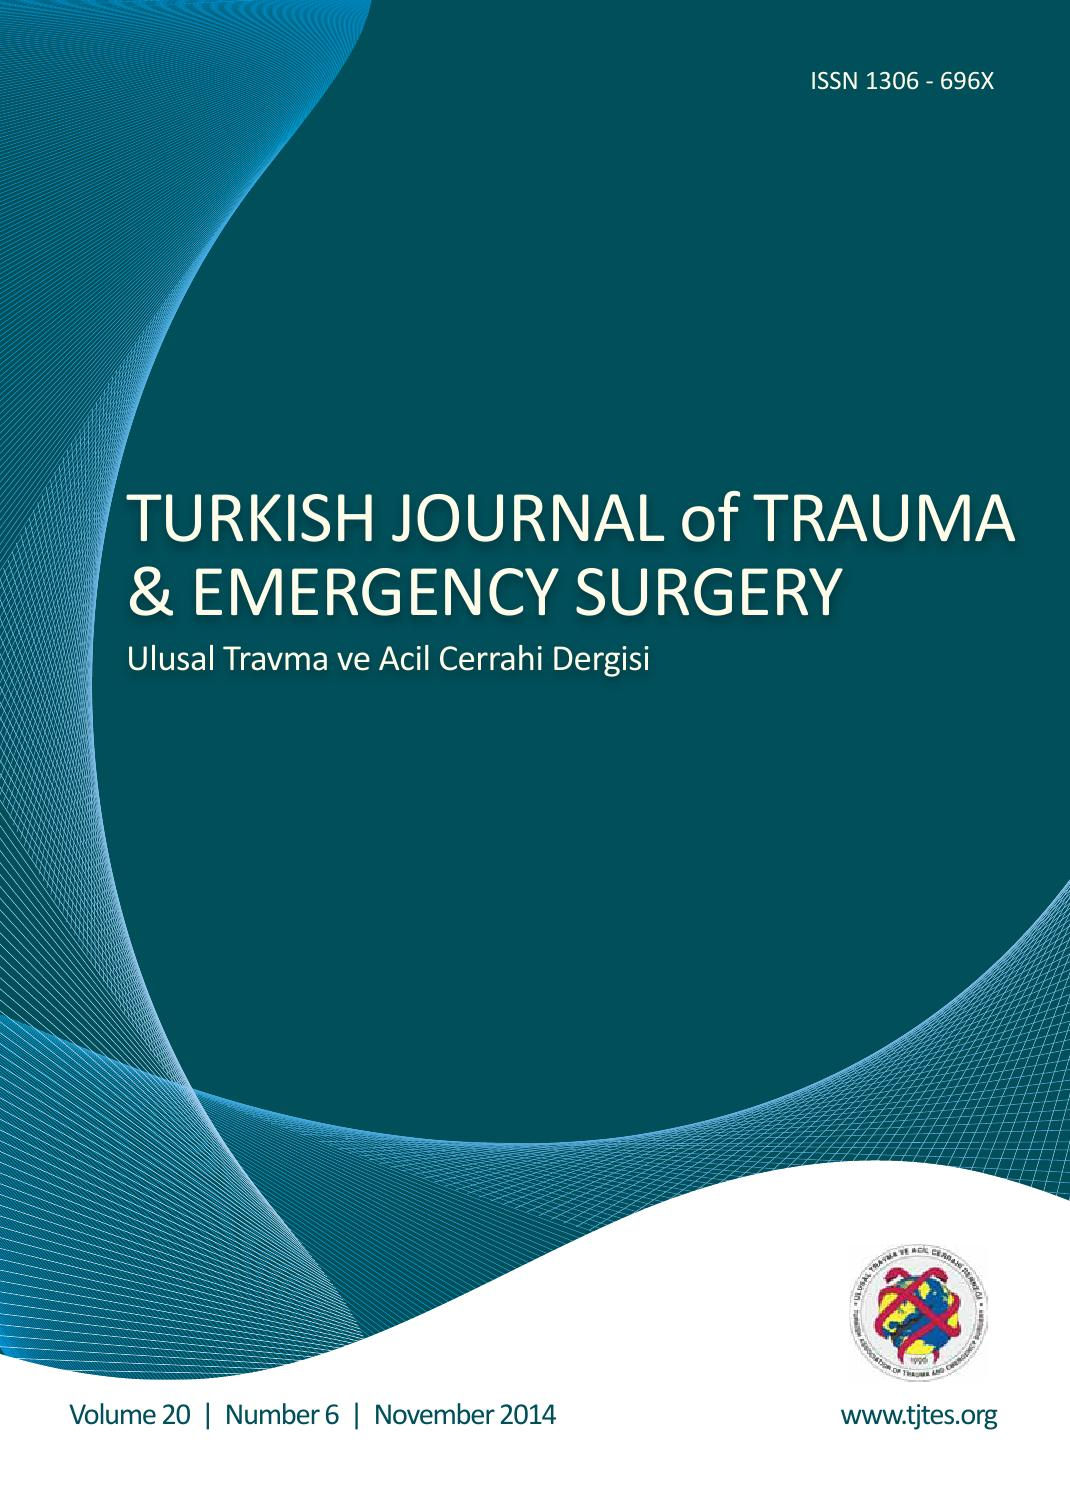 Trauma 2014 6 By Karepublishing Issuu